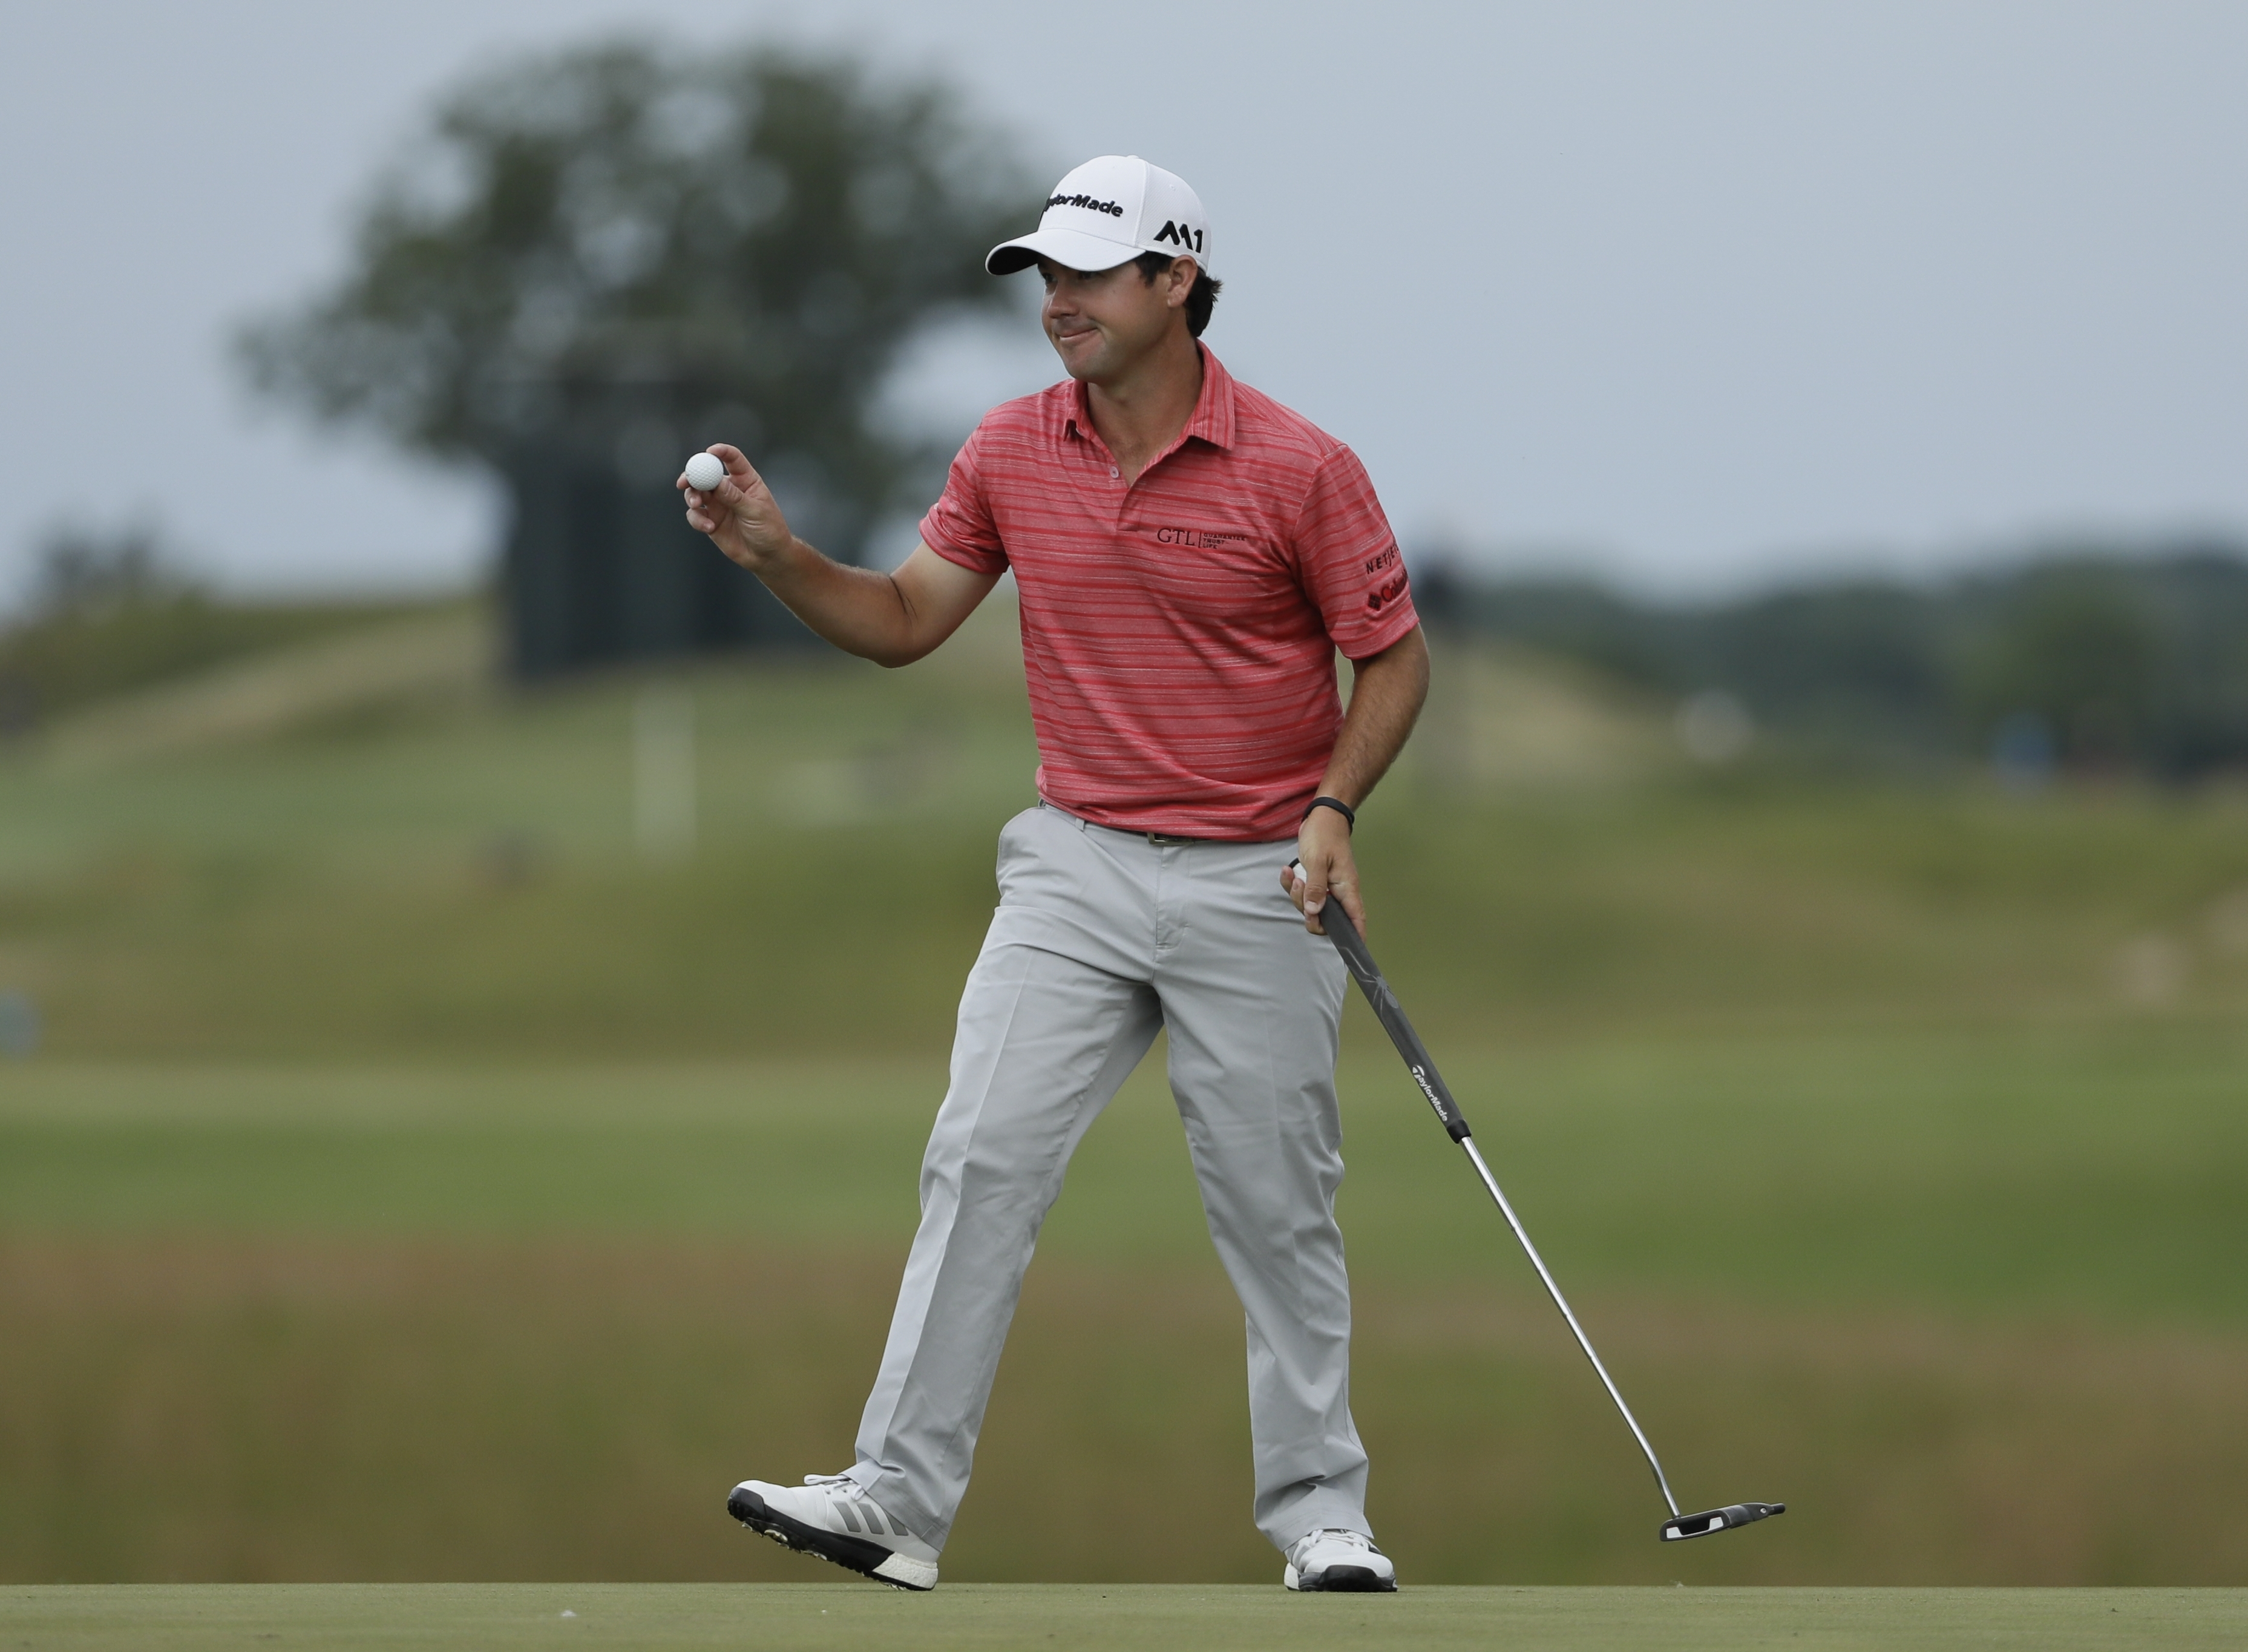 Brian Harman reacts on the 18th hole during the third round of the U.S. Open golf tournament Saturday, June 17, 2017, at Erin Hills in Erin, Wis. (AP Photo/David J. Phillip)